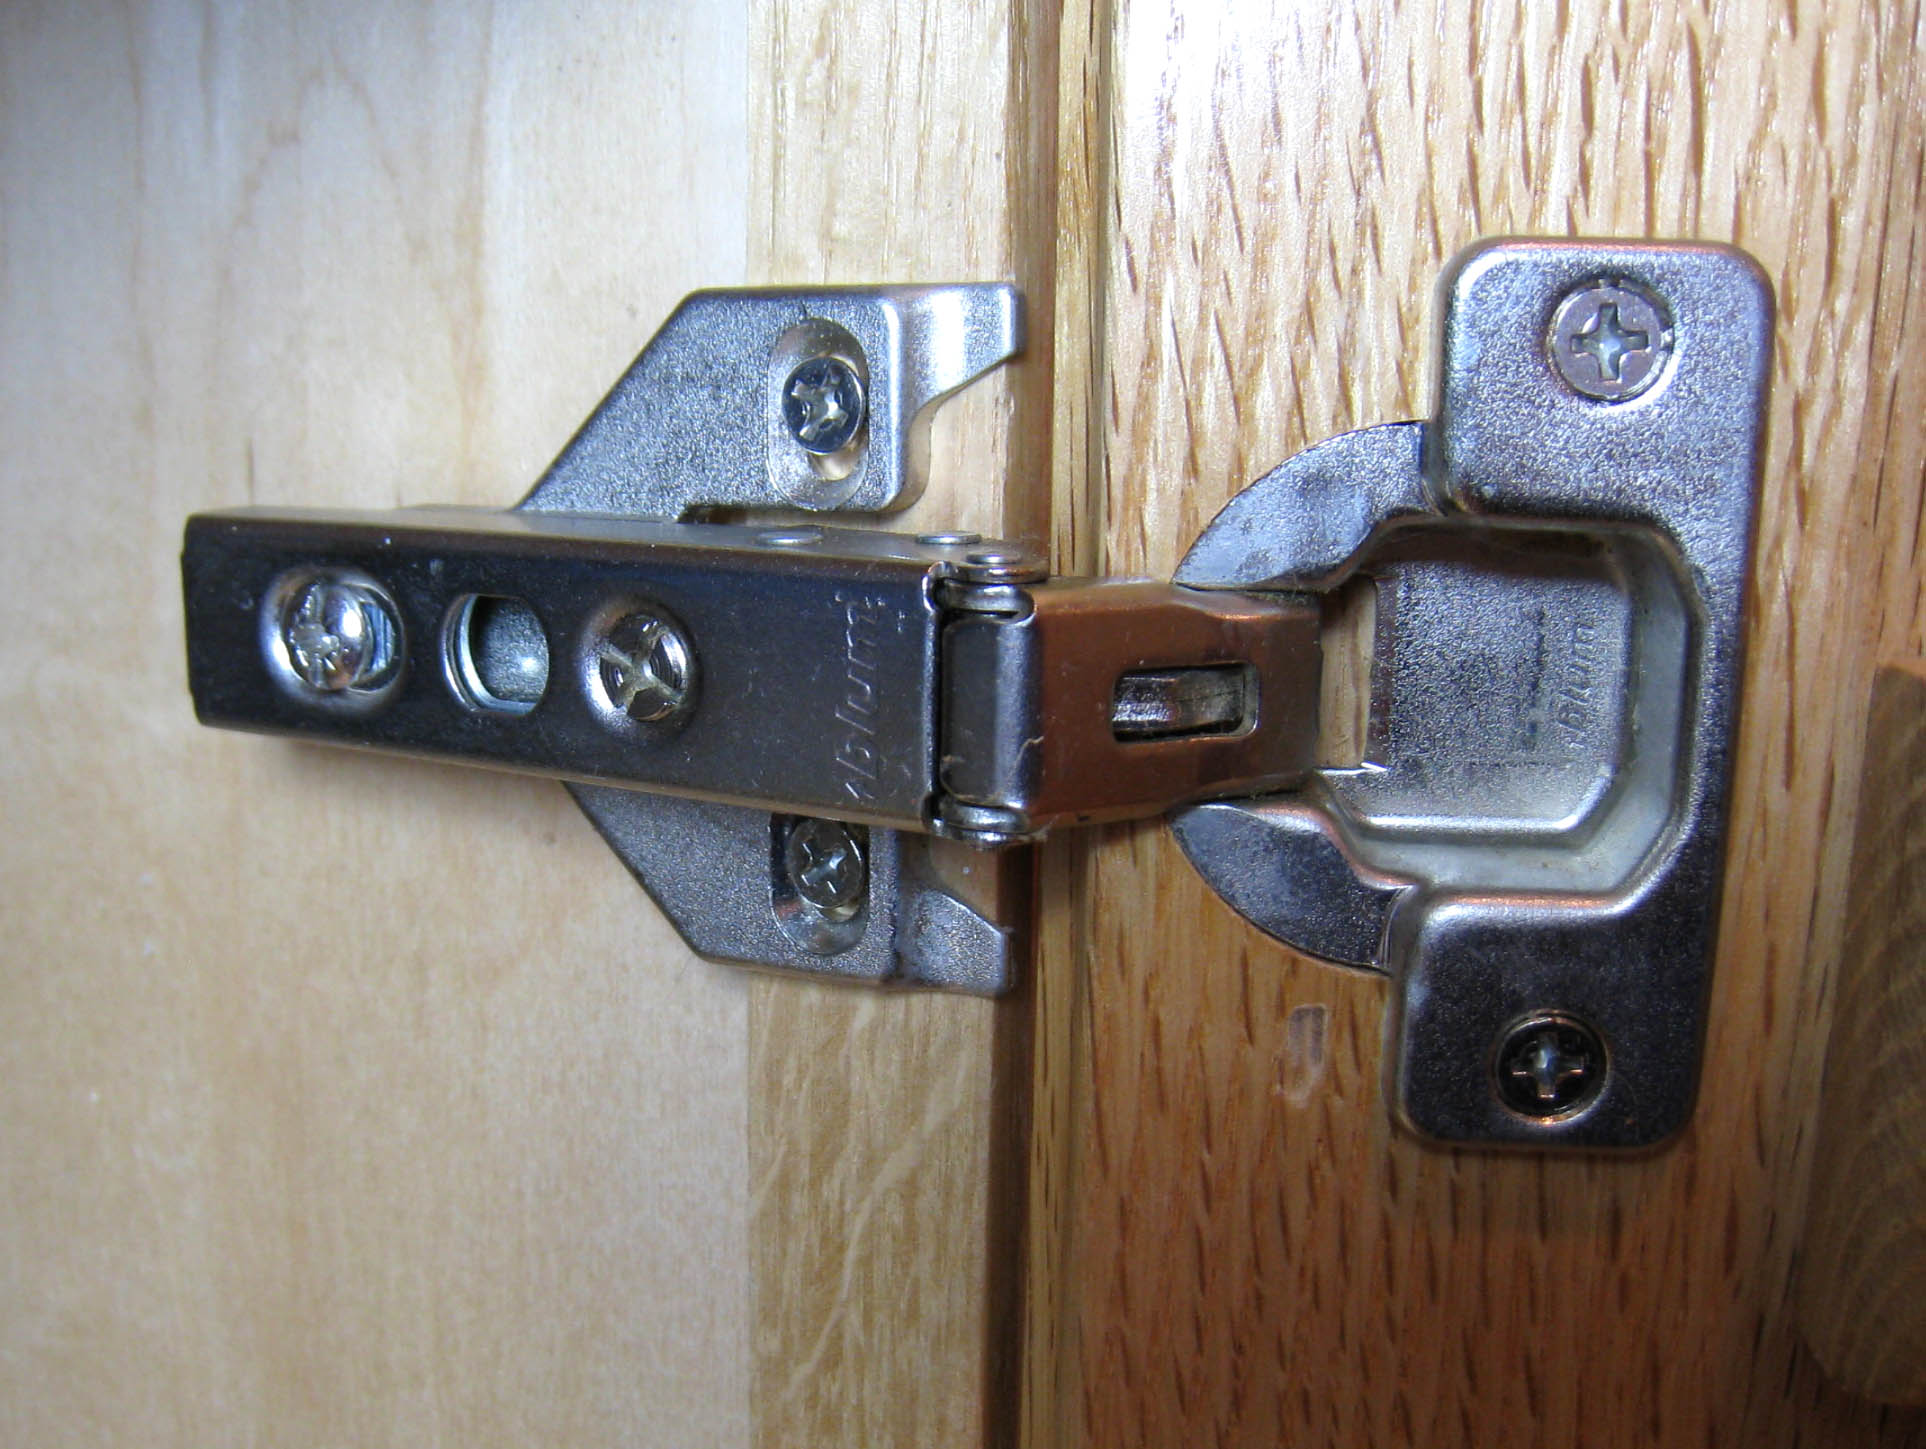 European Kitchen Cabinet Hinges File Euro Hinge 1 Jpg Wikimedia Commons